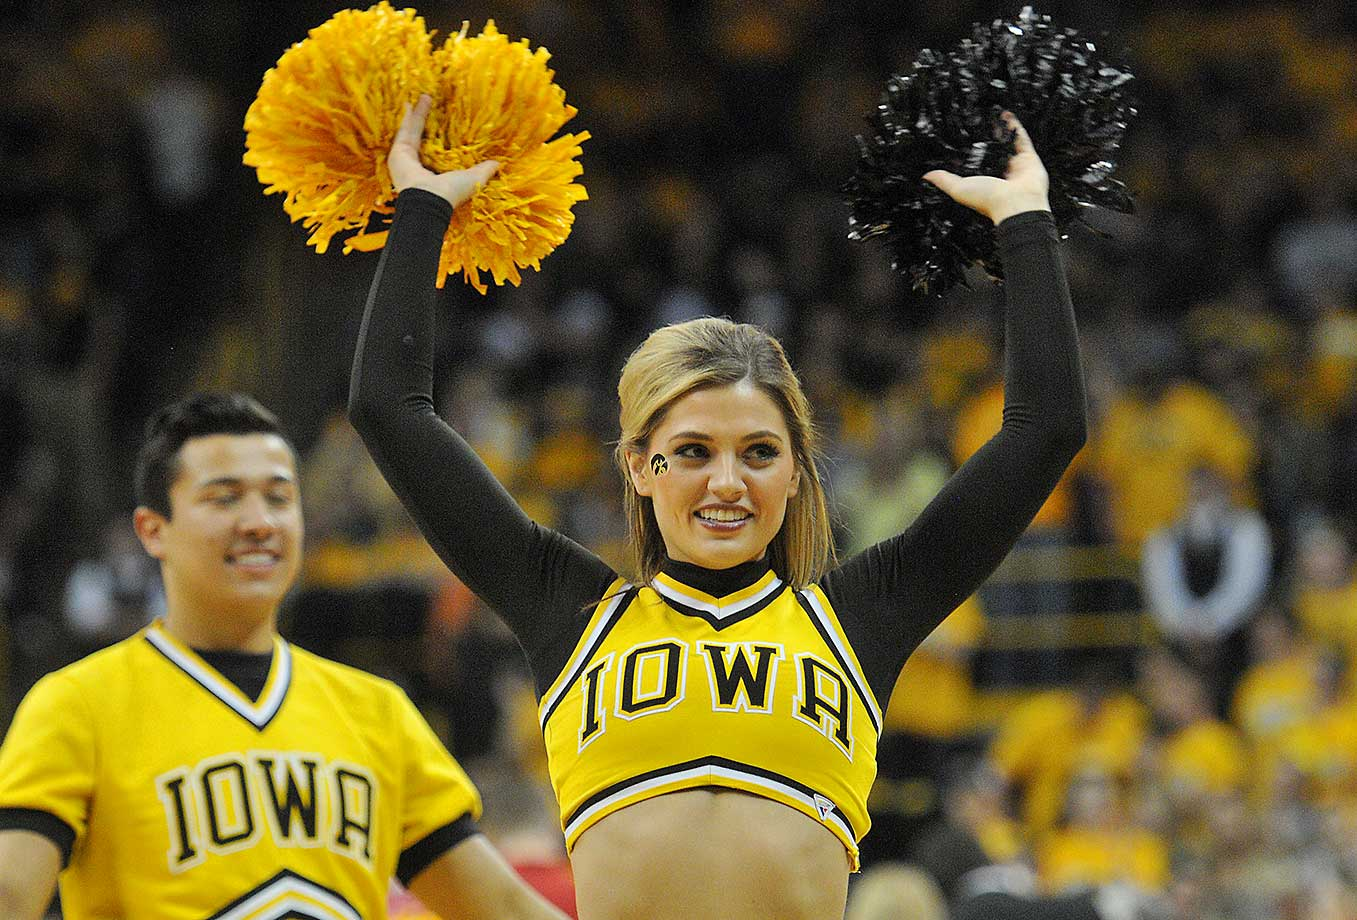 An Iowa cheerleader performs during a game between the Wisconsin Badgers and the Iowa Hawkeyes.